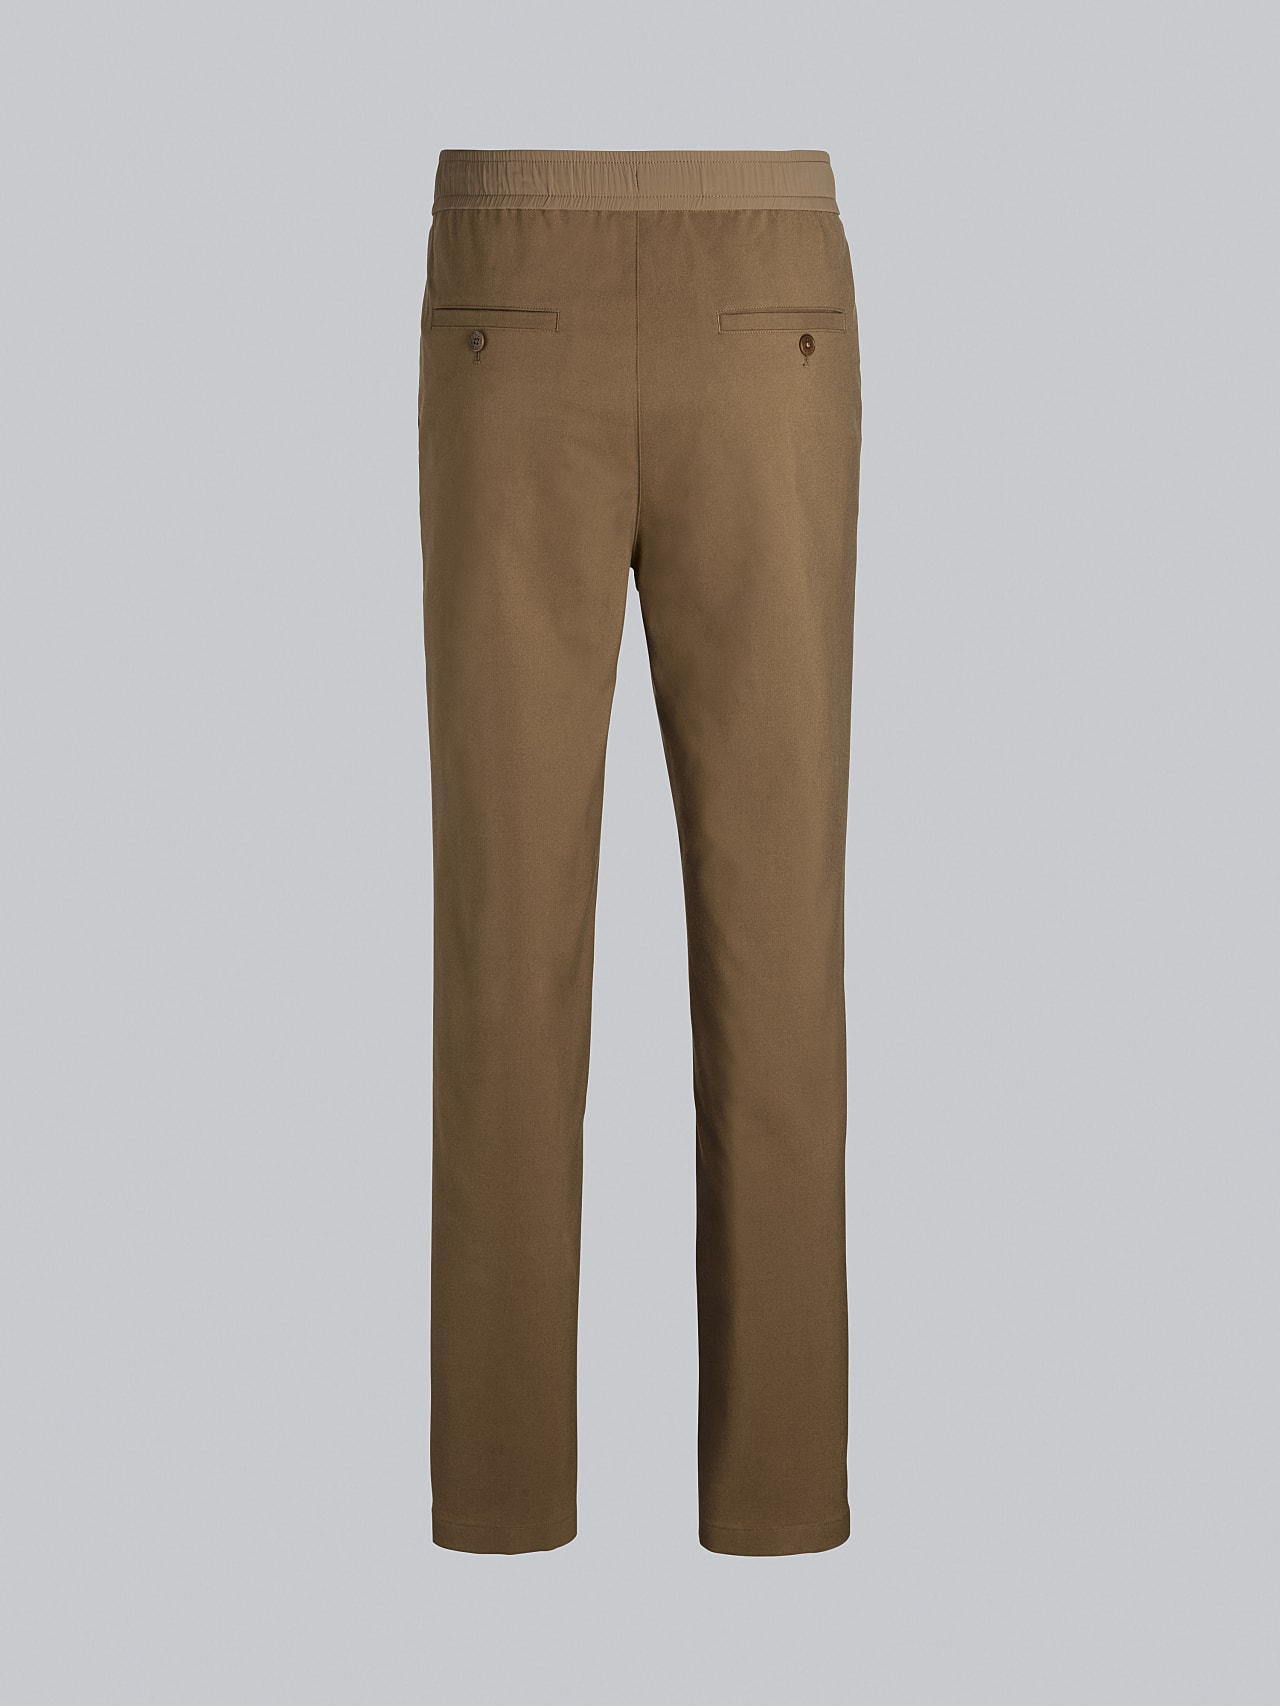 PANZA V1.Y5.02 Slim Pleat Trousers gold Left Alpha Tauri